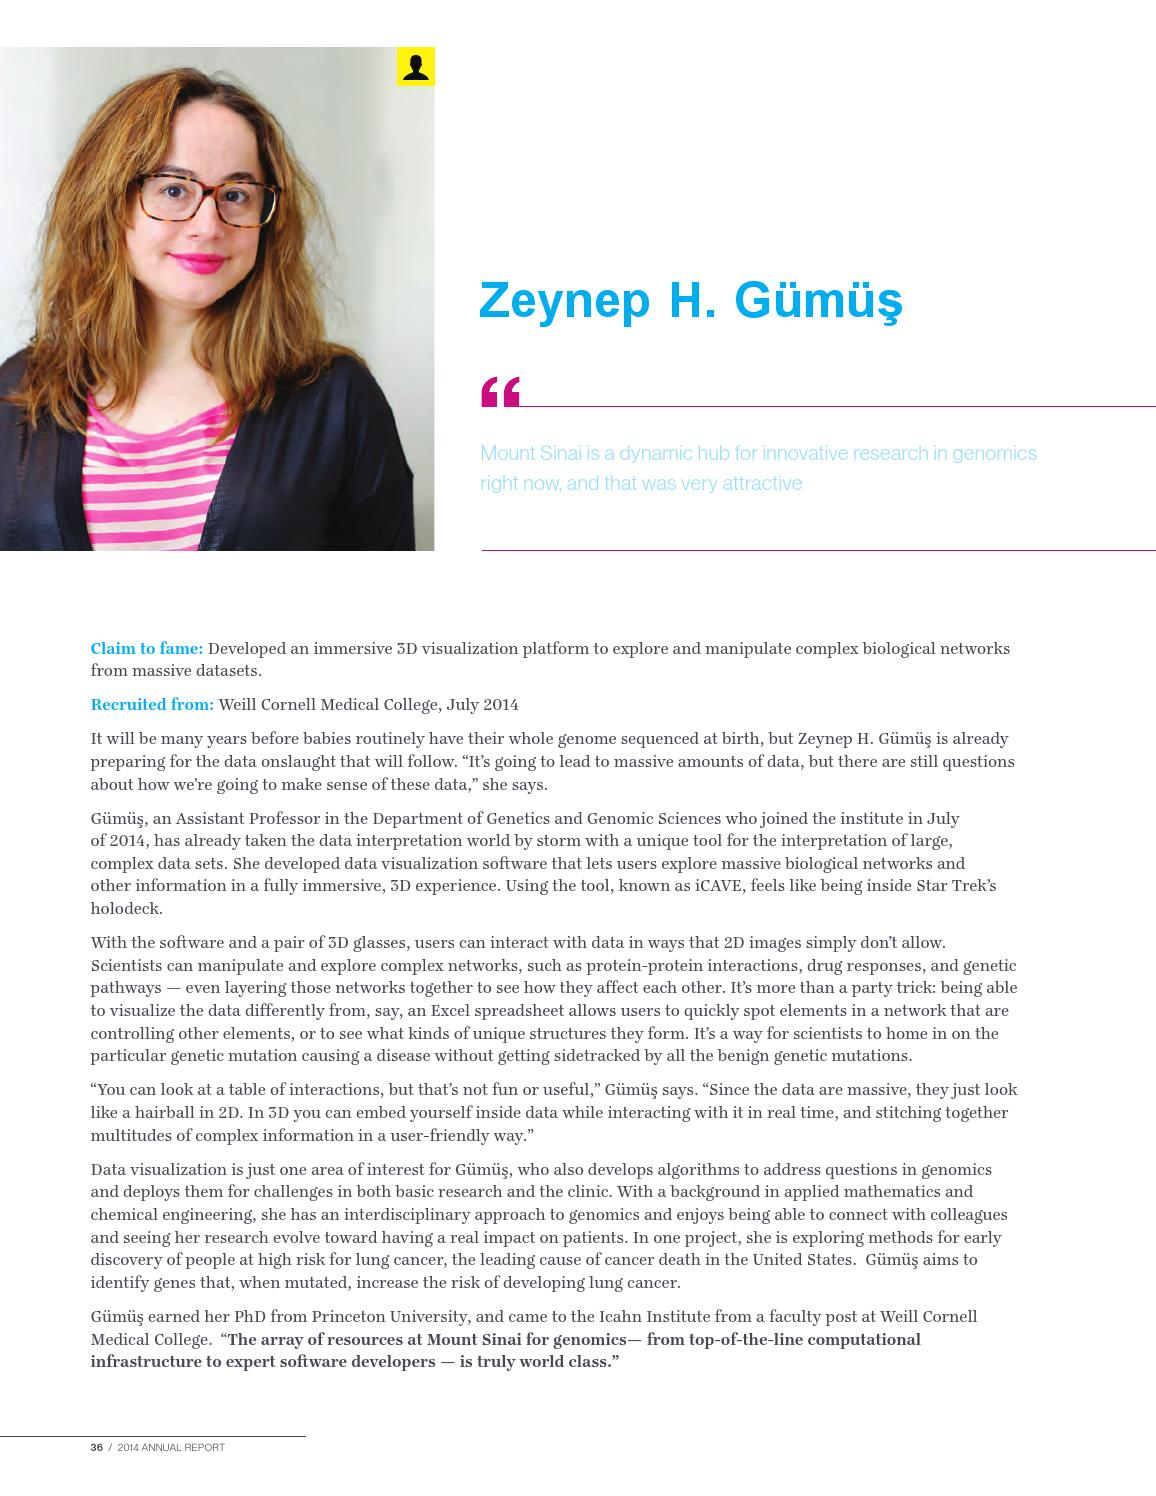 2014 Genomics Annual Report by Mount Sinai Health System - issuu